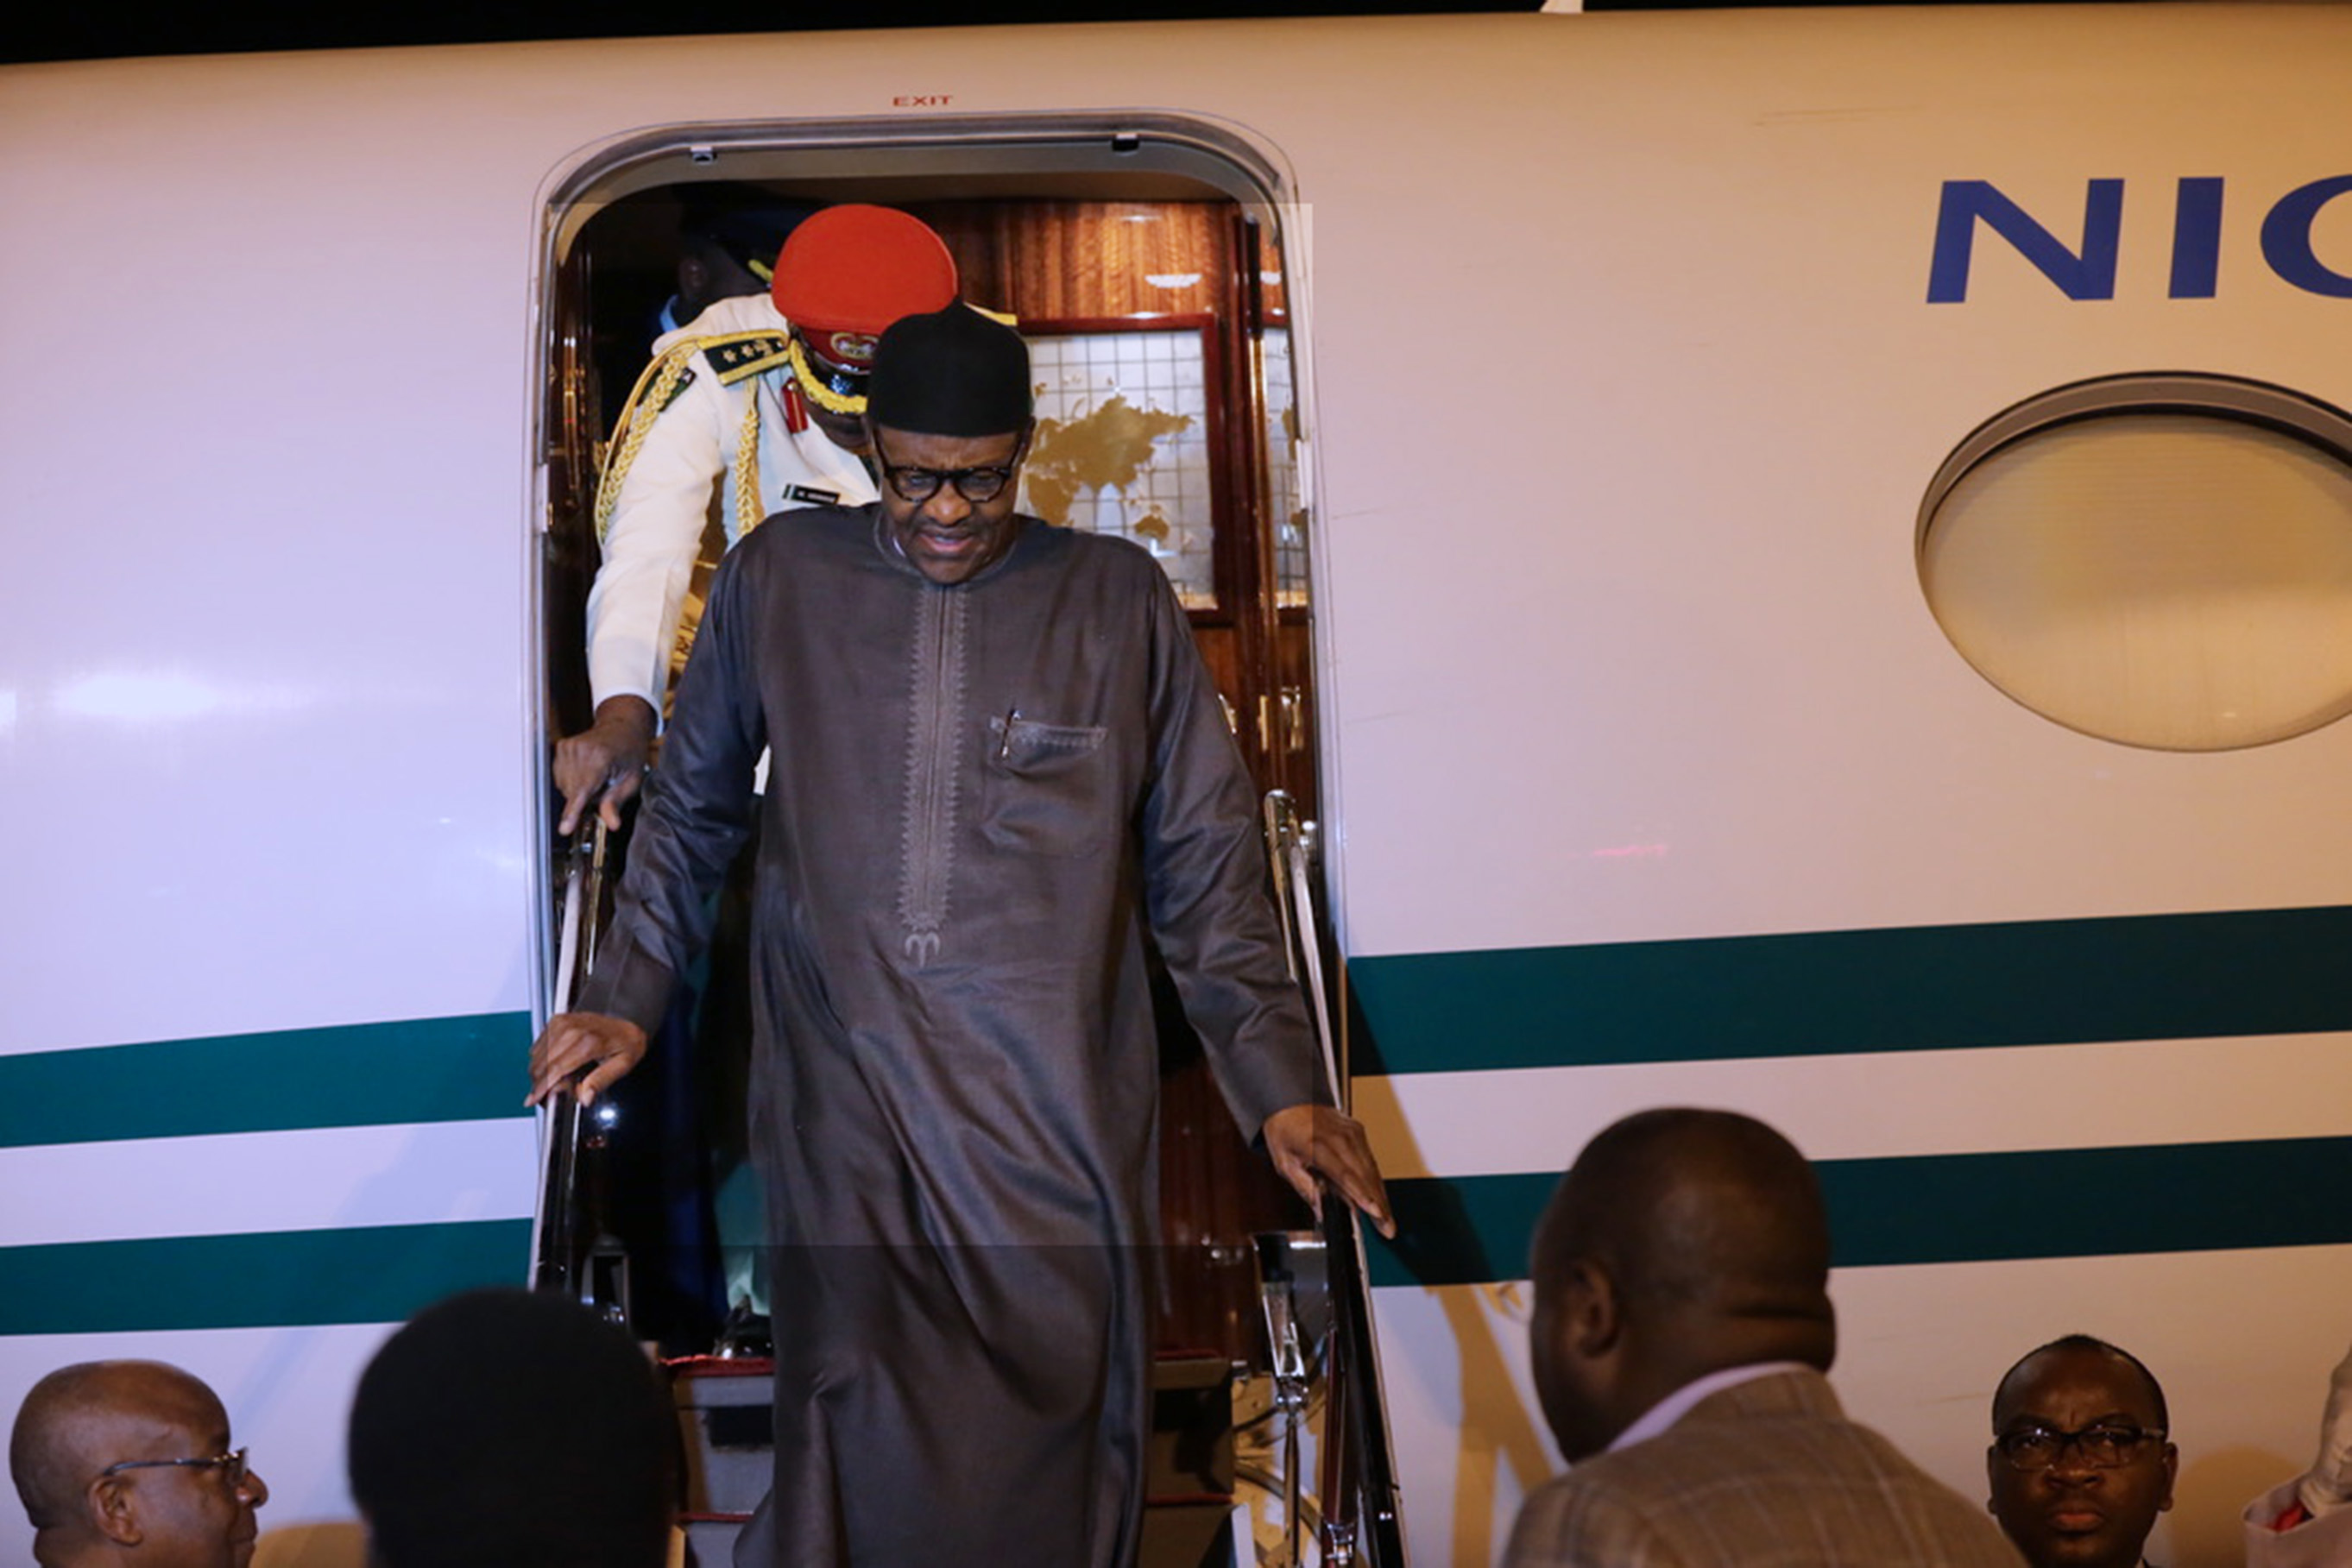 PRESIDENT BUHARI RETURNS 0A. President Muhammadu Buhari returns to Abuja after a successful outing with the President of the United State Donald Trump in Washington DC. PHOTO; SUNDAY AGHAEZE. MAY 2018.